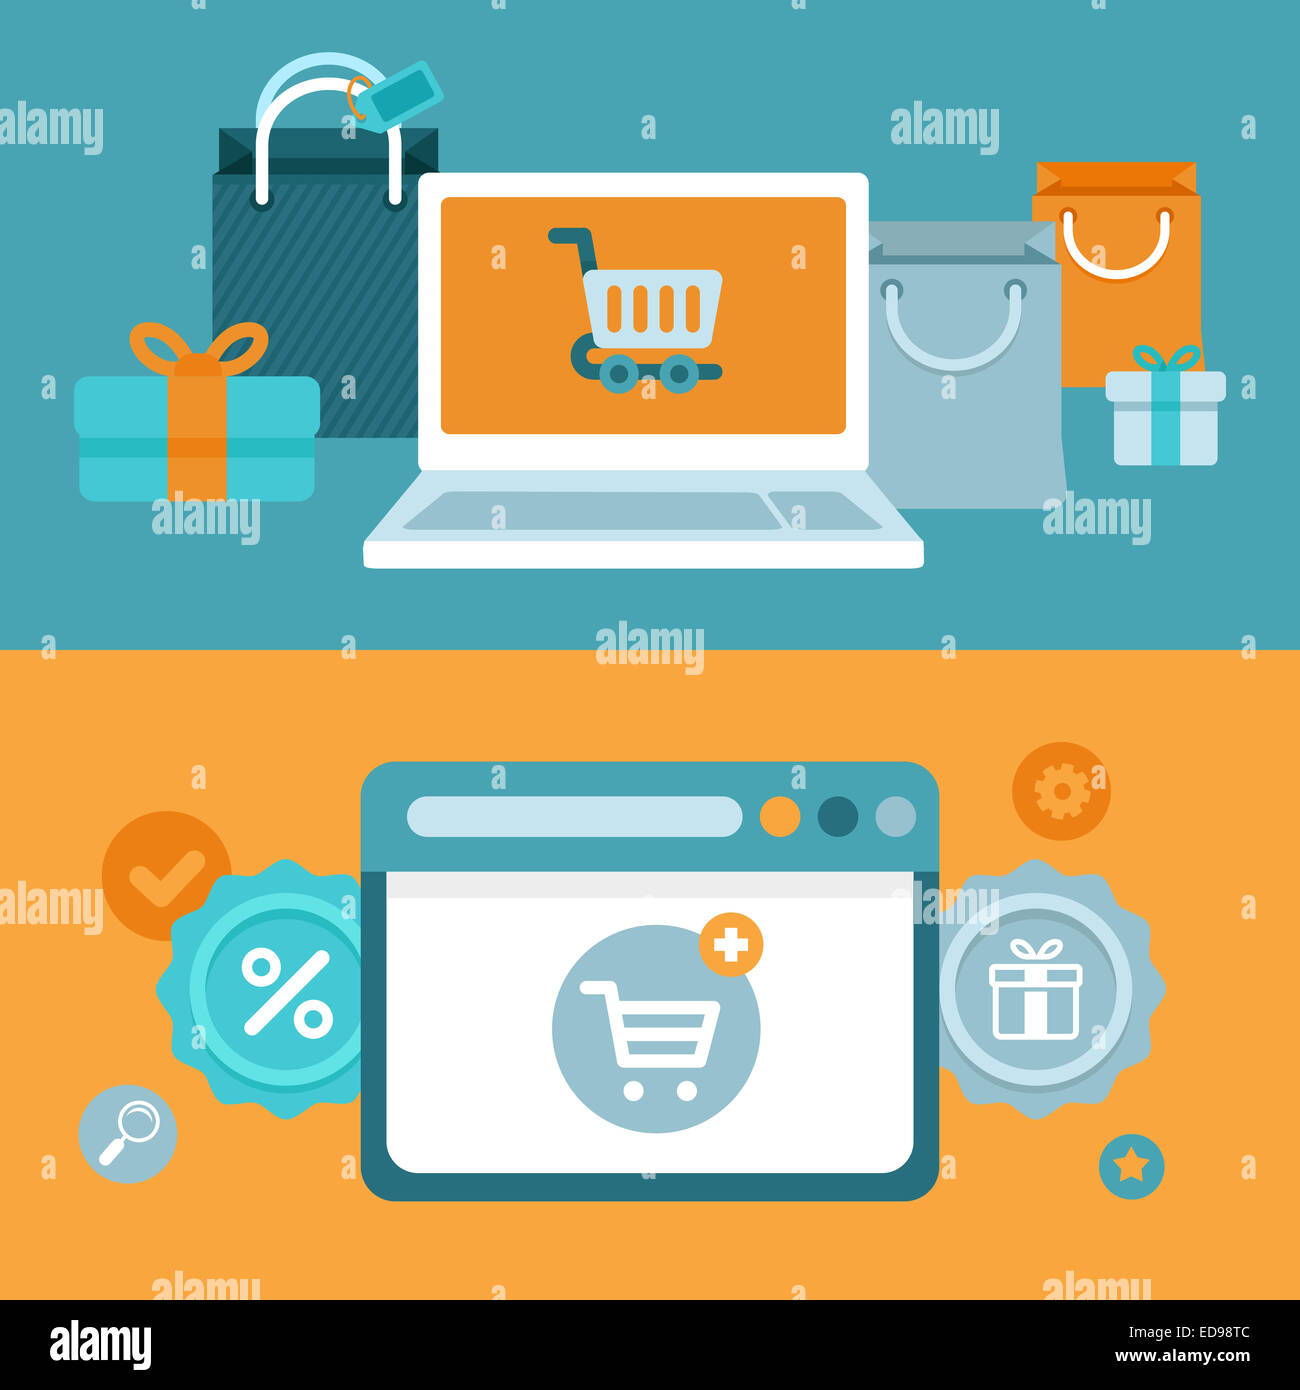 Ecommerce Marketing Banners Realistic Banners